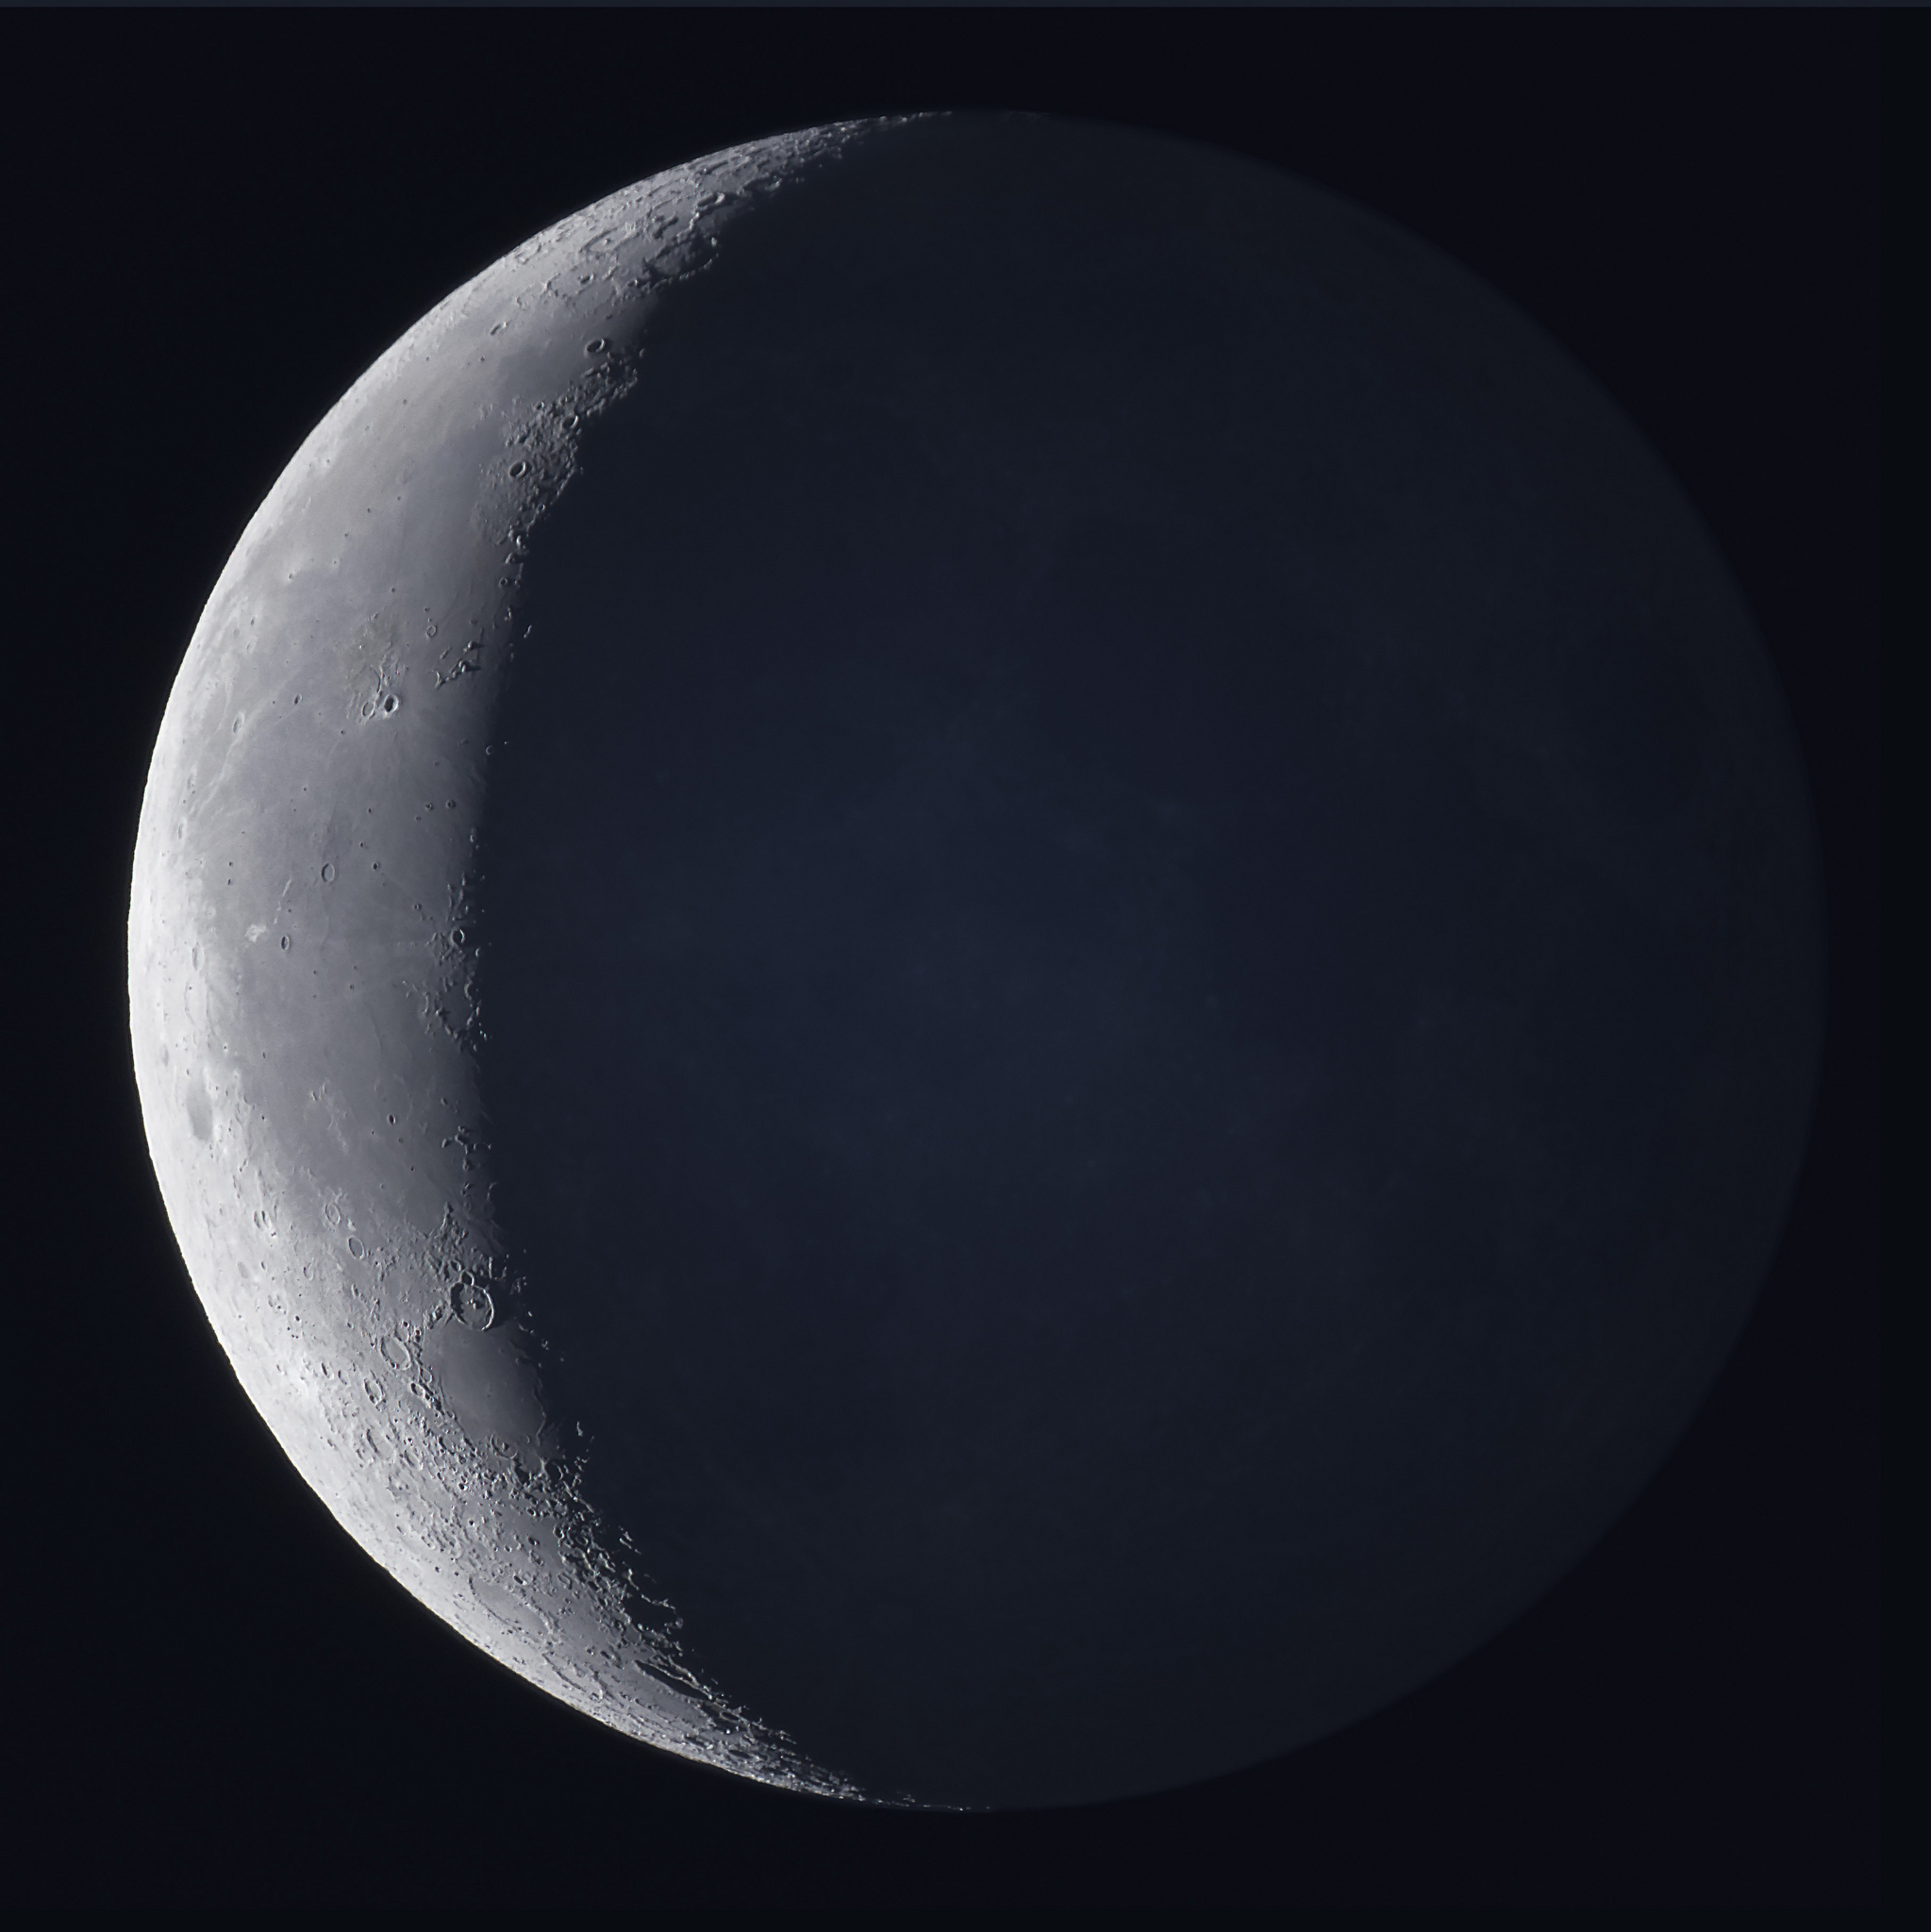 25 Moon Waning Crescent with Earthshine